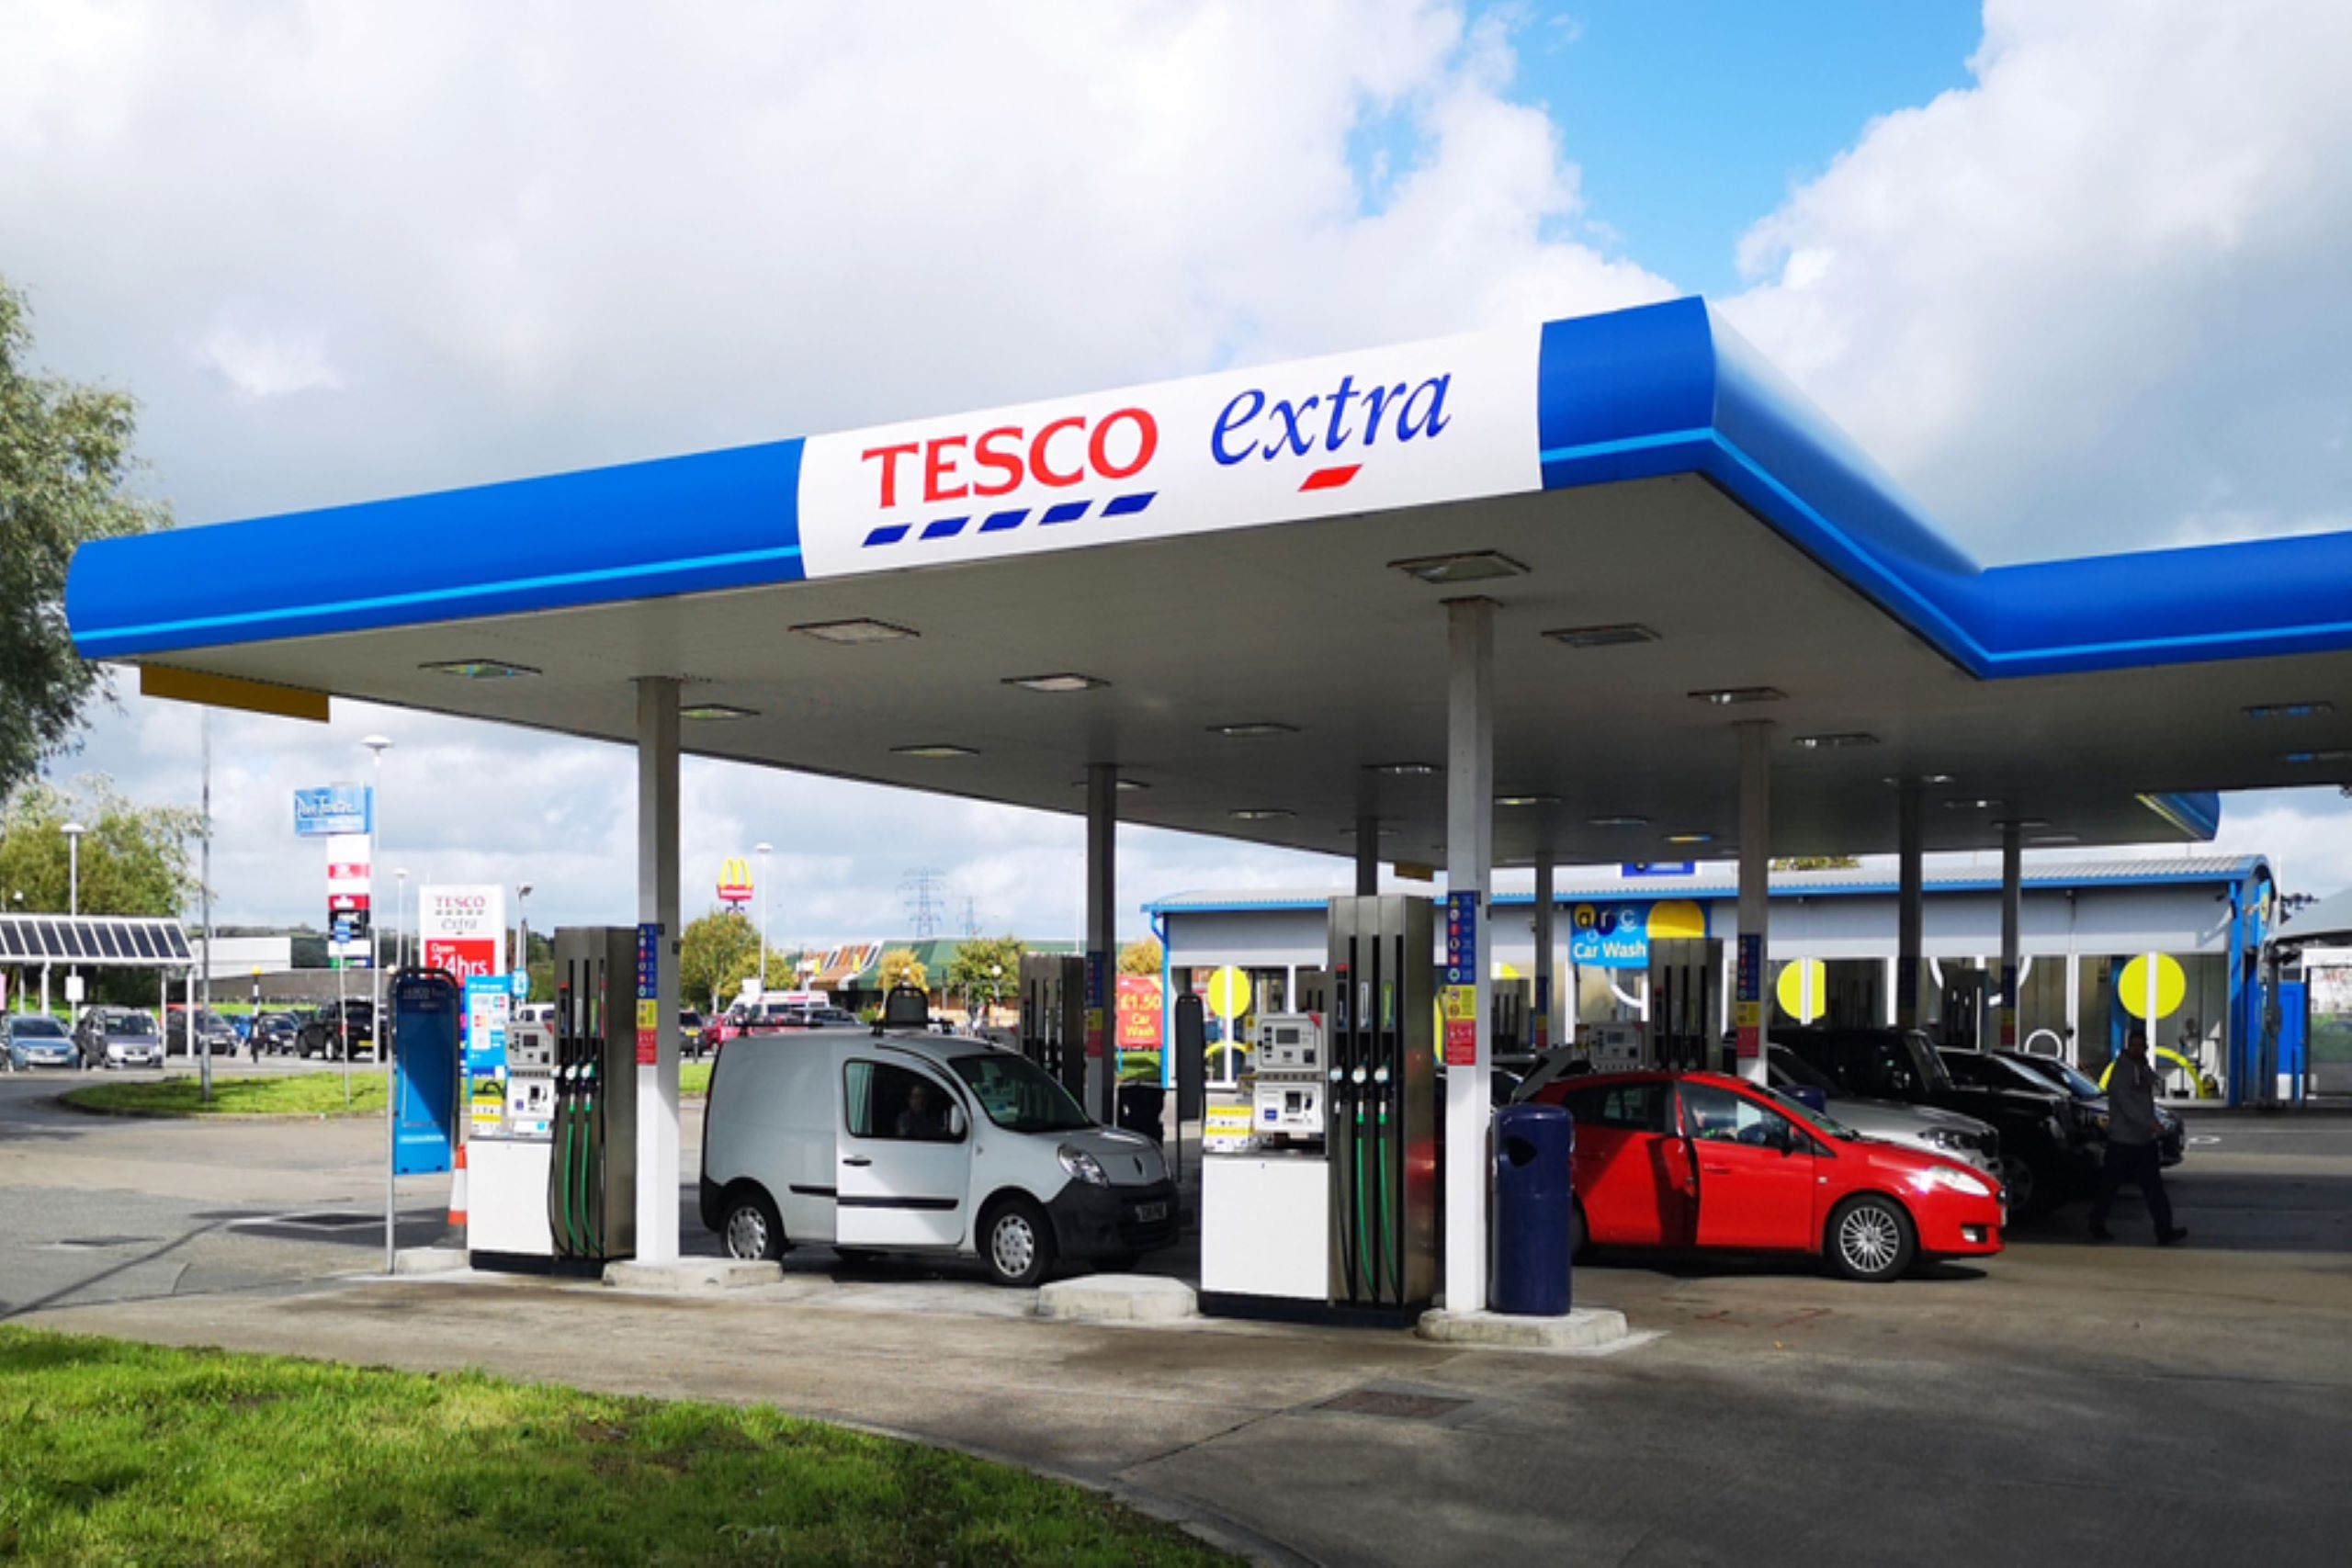 Photo of a Tesco Extra petrol forecourt with customers refuelling